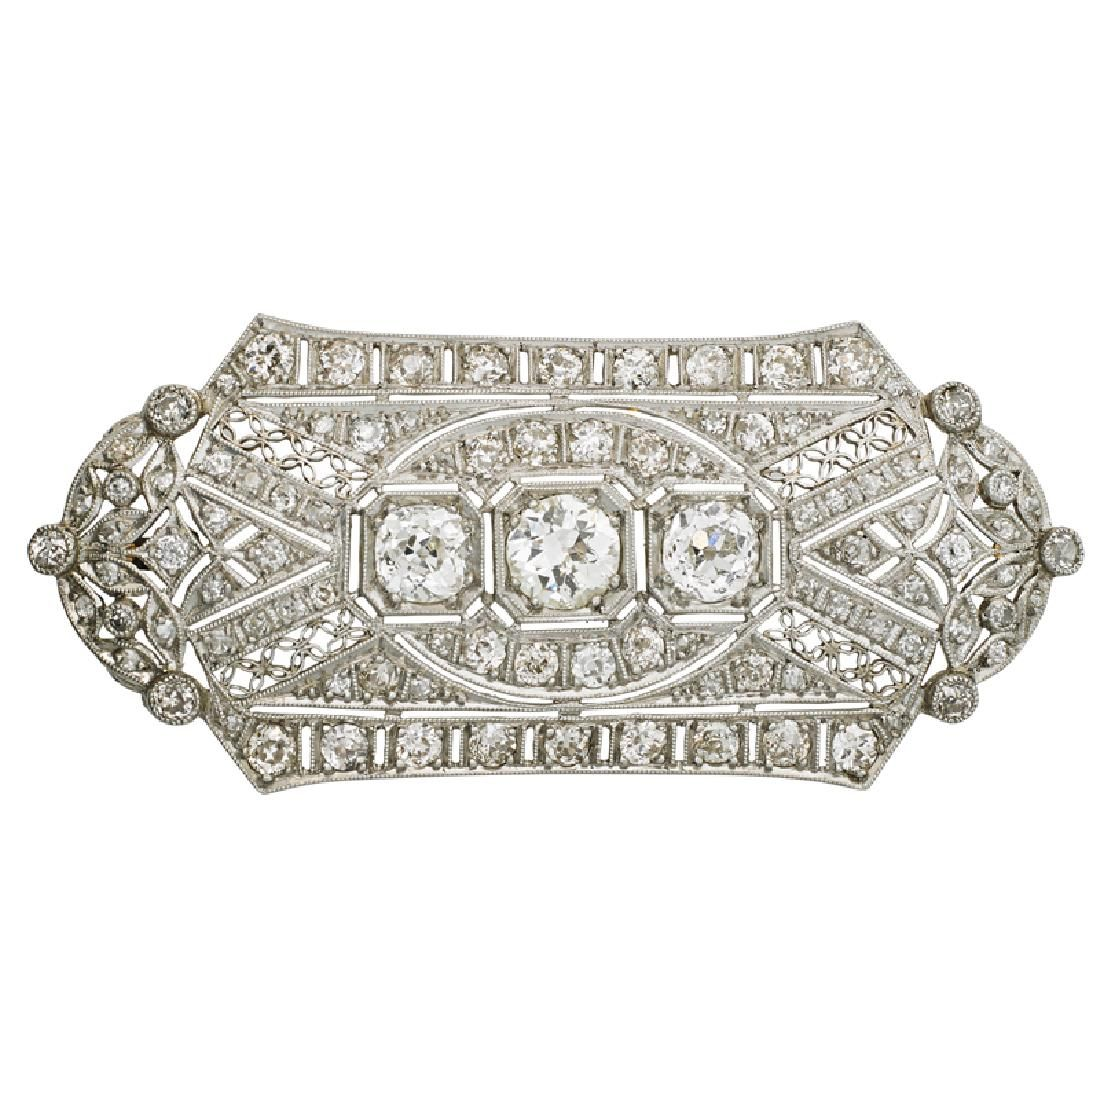 EDWARDIAN DIAMOND & PLATINUM BROOCH